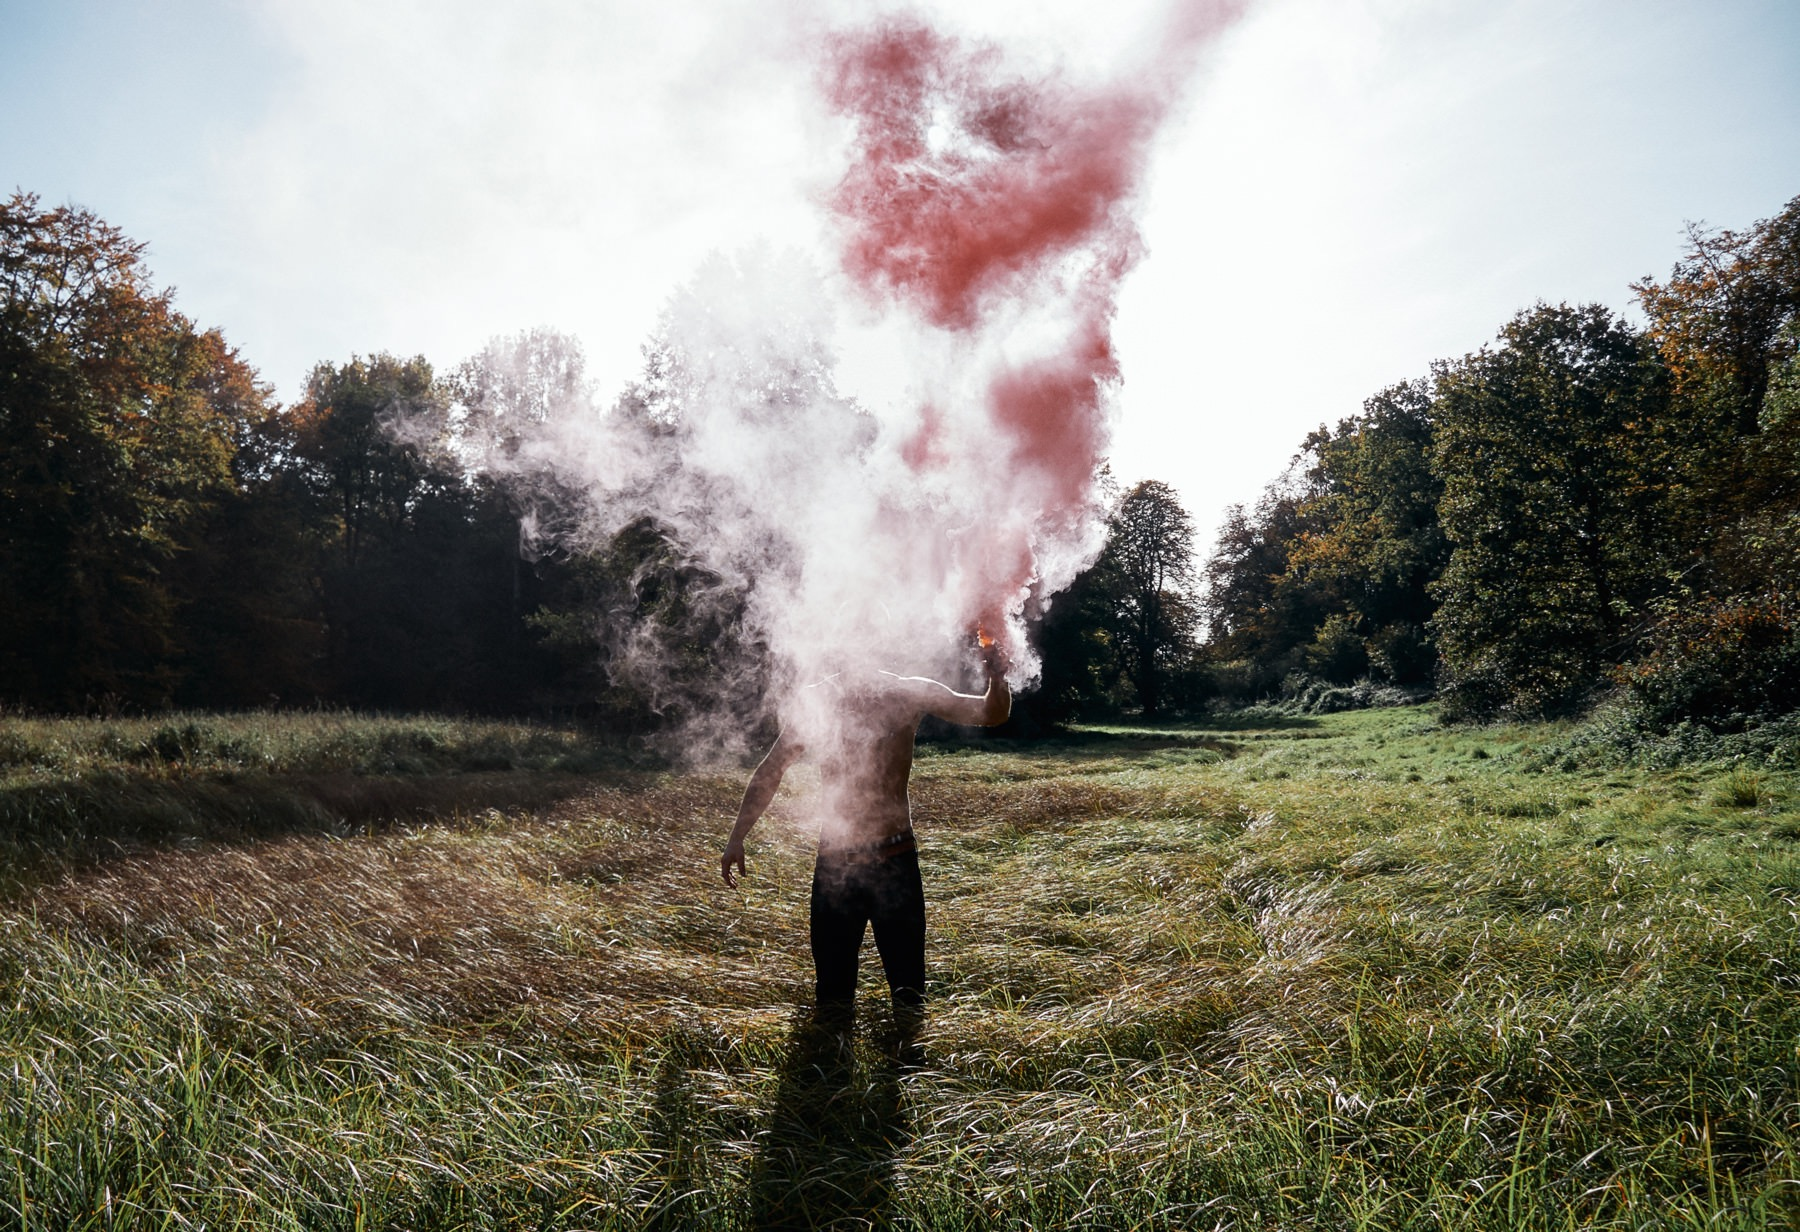 ­photo, photos, photography, photographer, photographers, sunlight, sun, daytime, field, grass, tree, trees, smoke, dust, explosion, explode, man, men, smoke bomb